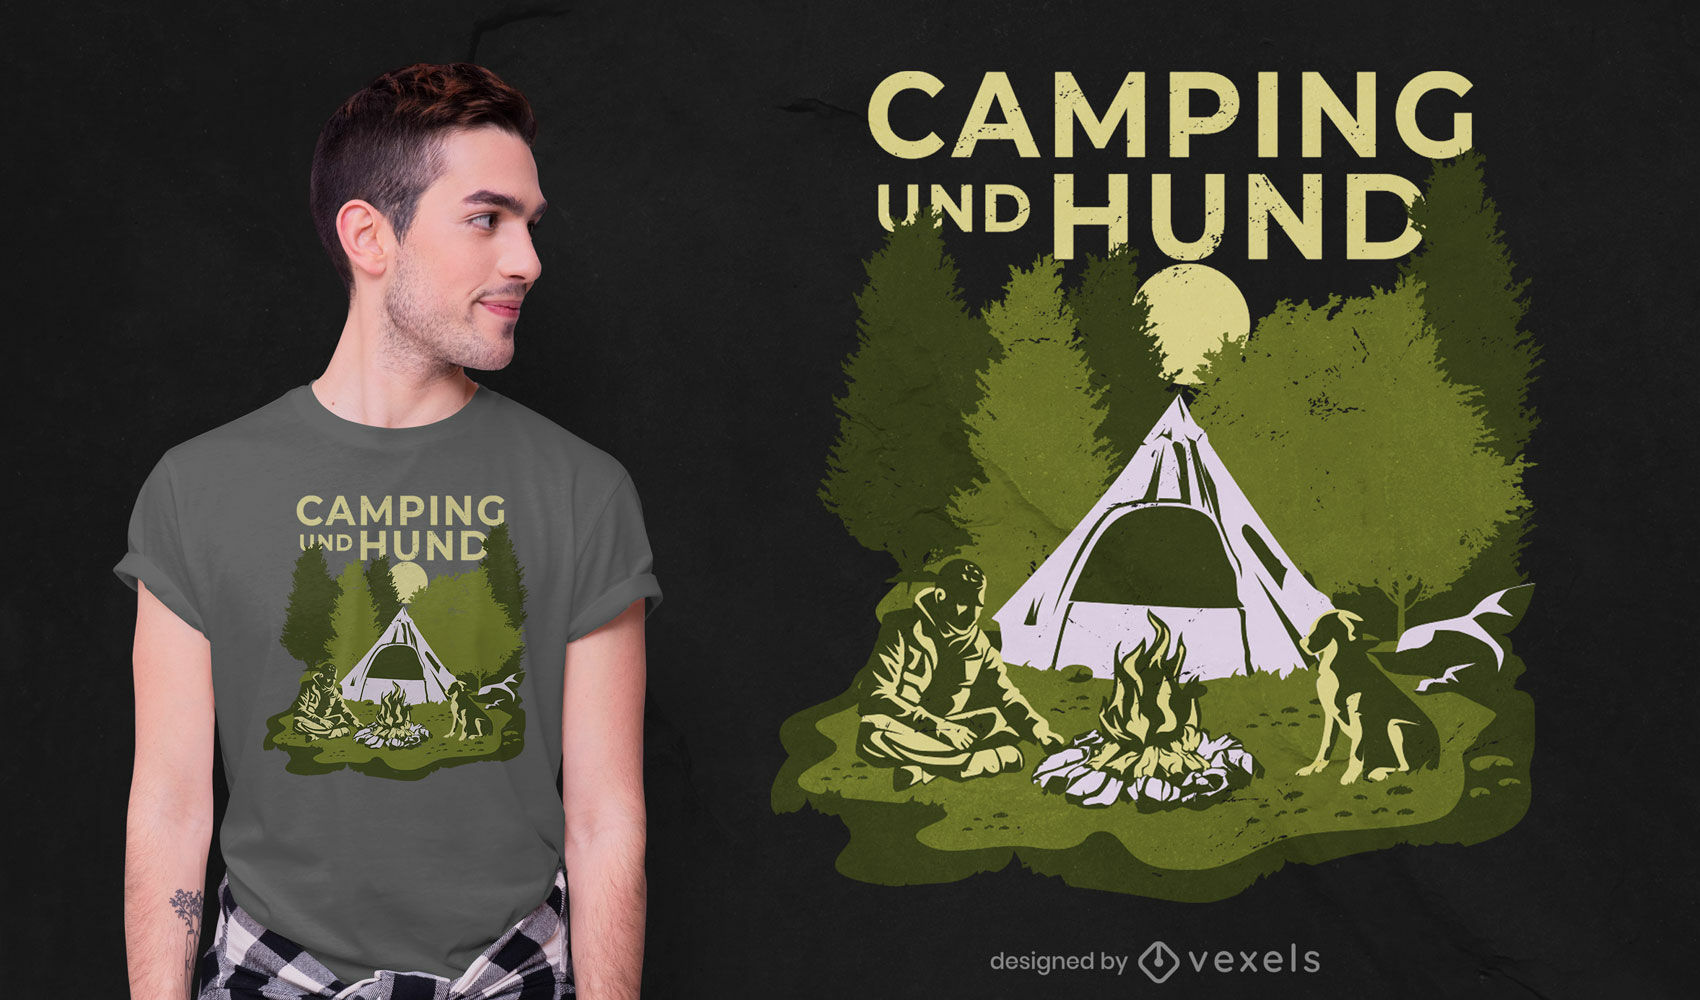 Man and dog in nature camping t-shirt design